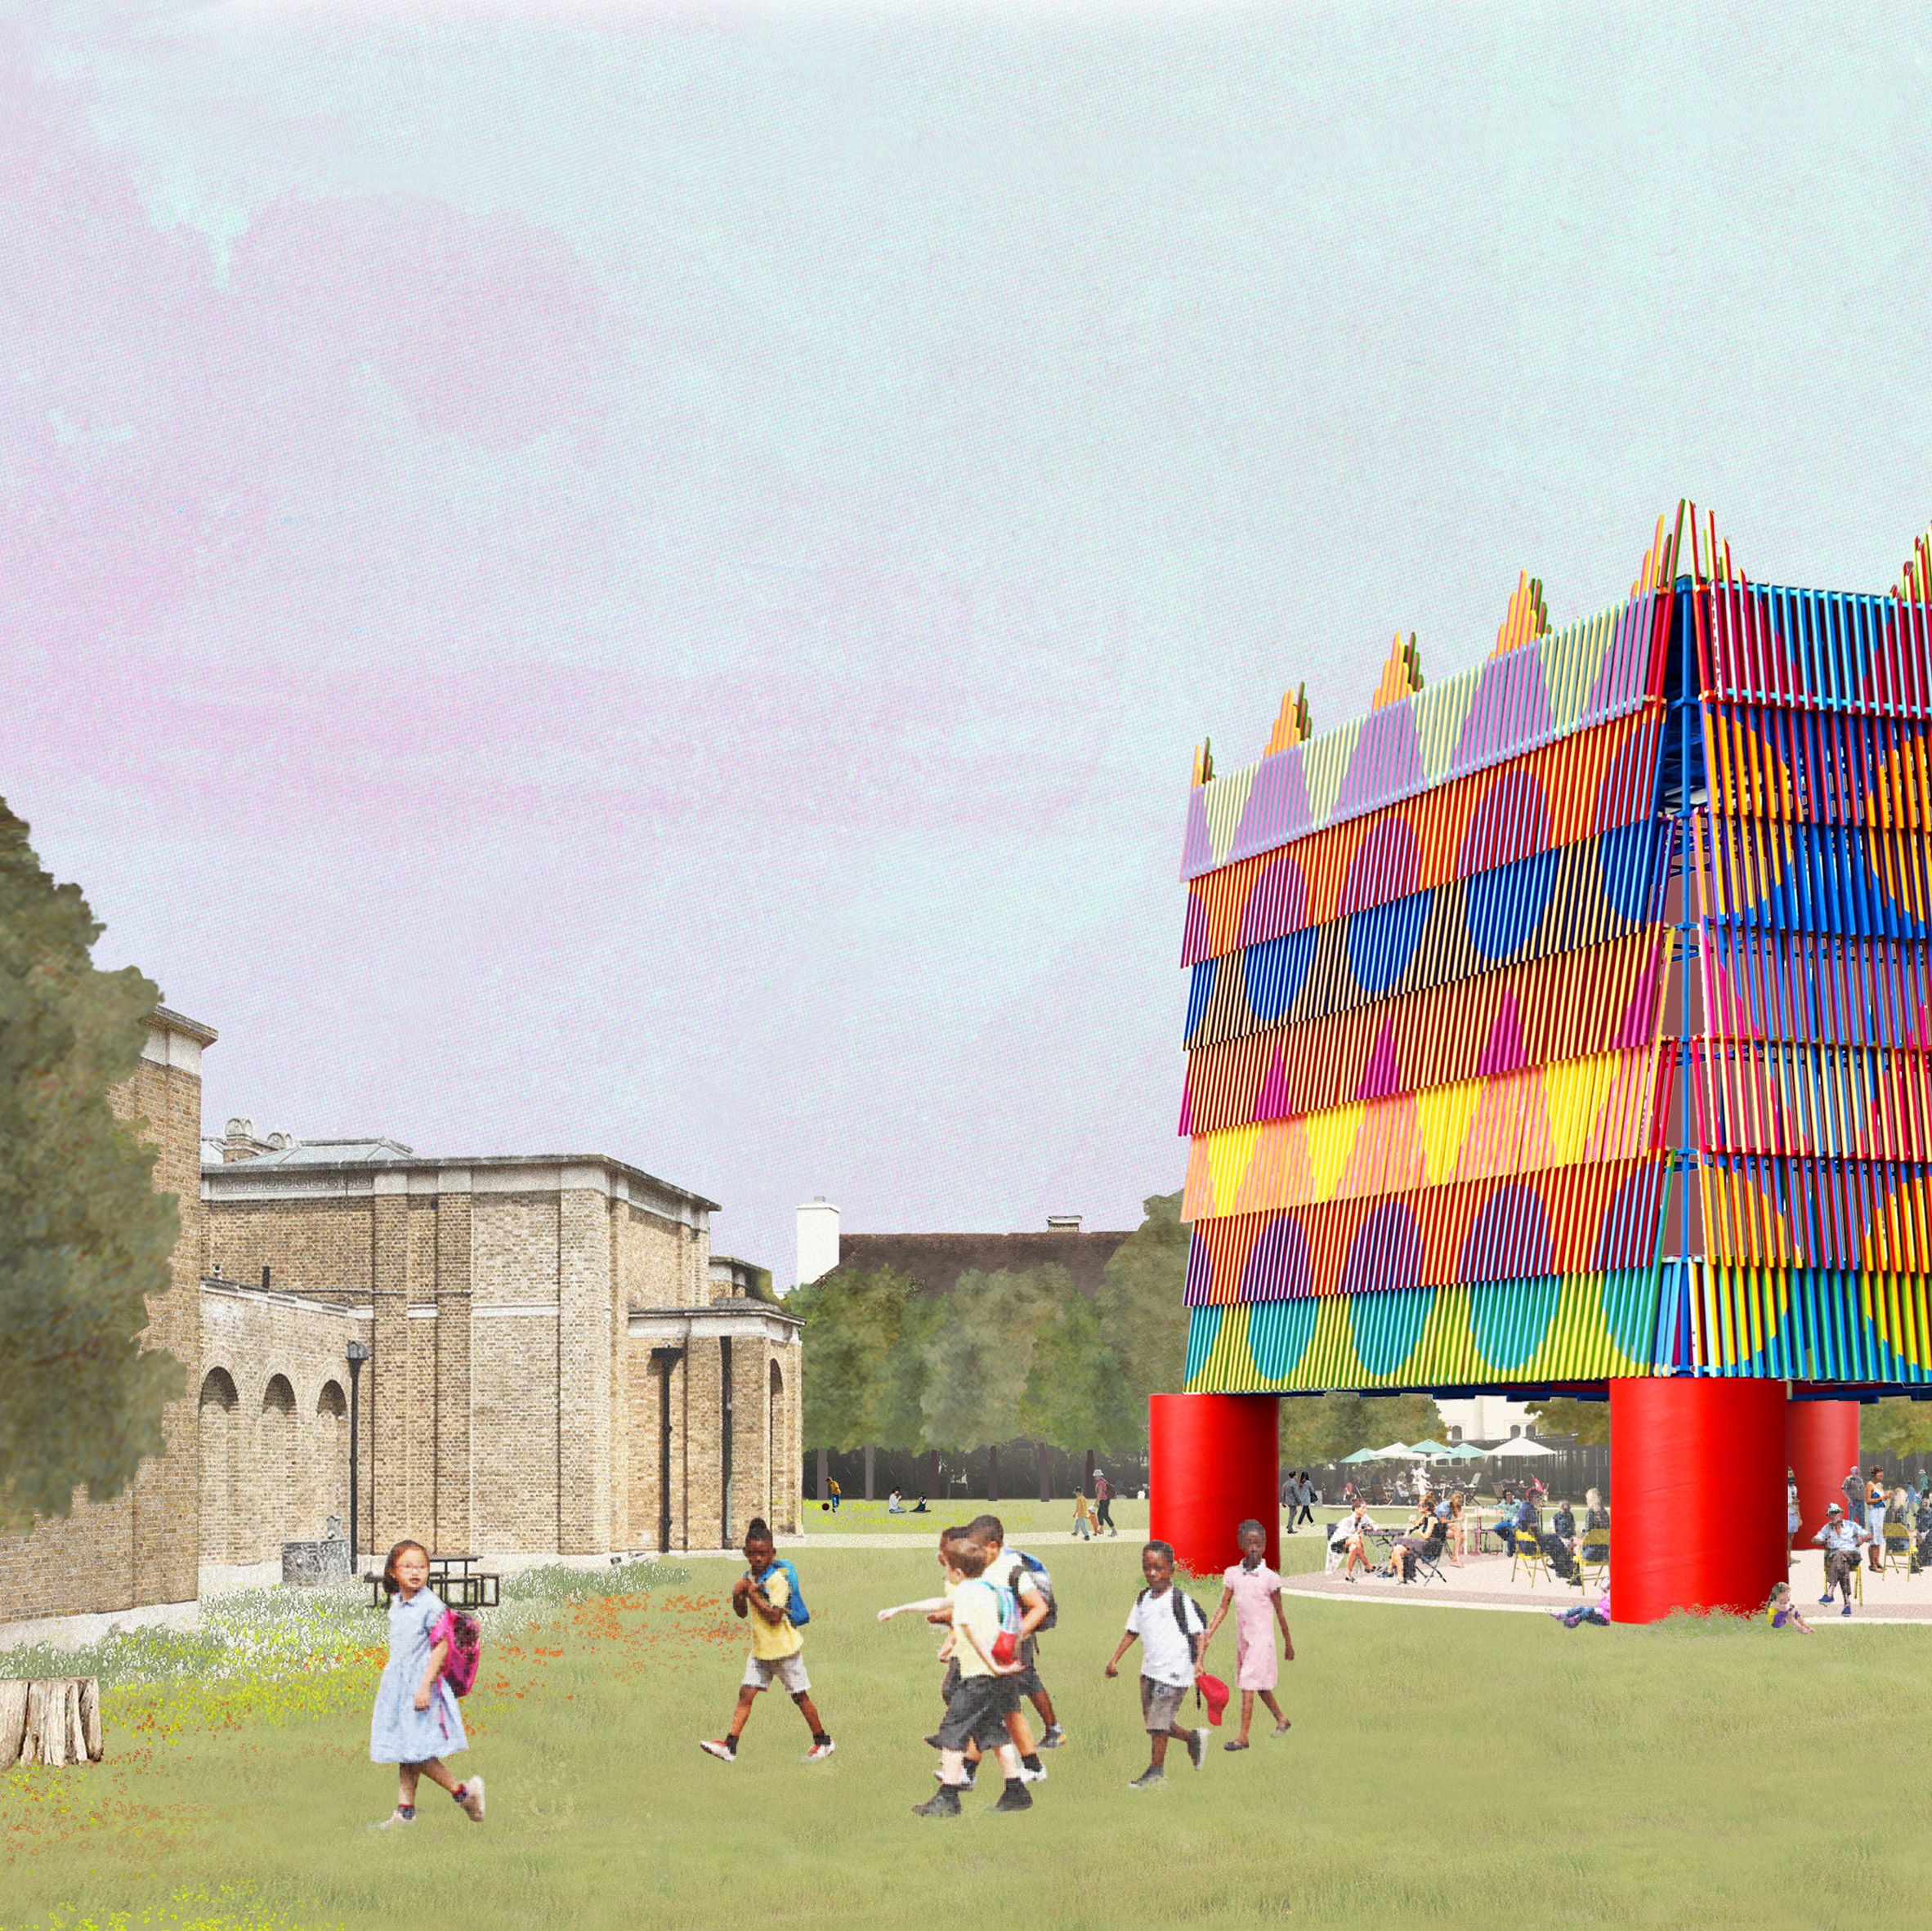 Dulwich Picture Gallery's 2019 pavilion will celebrate multicultural London